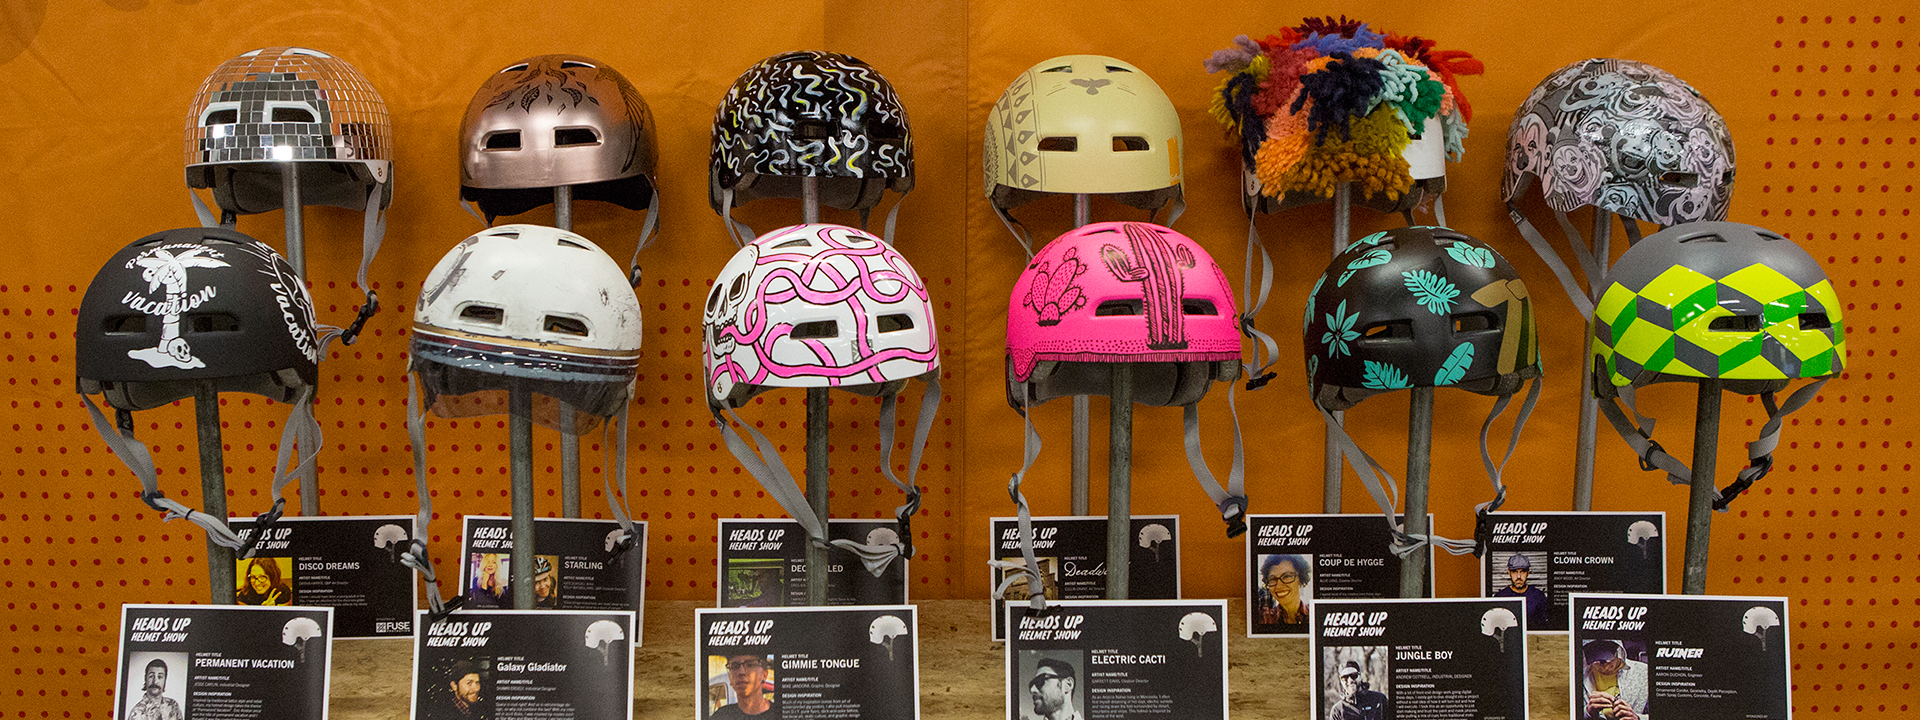 Heads Up Custom Helmet Show